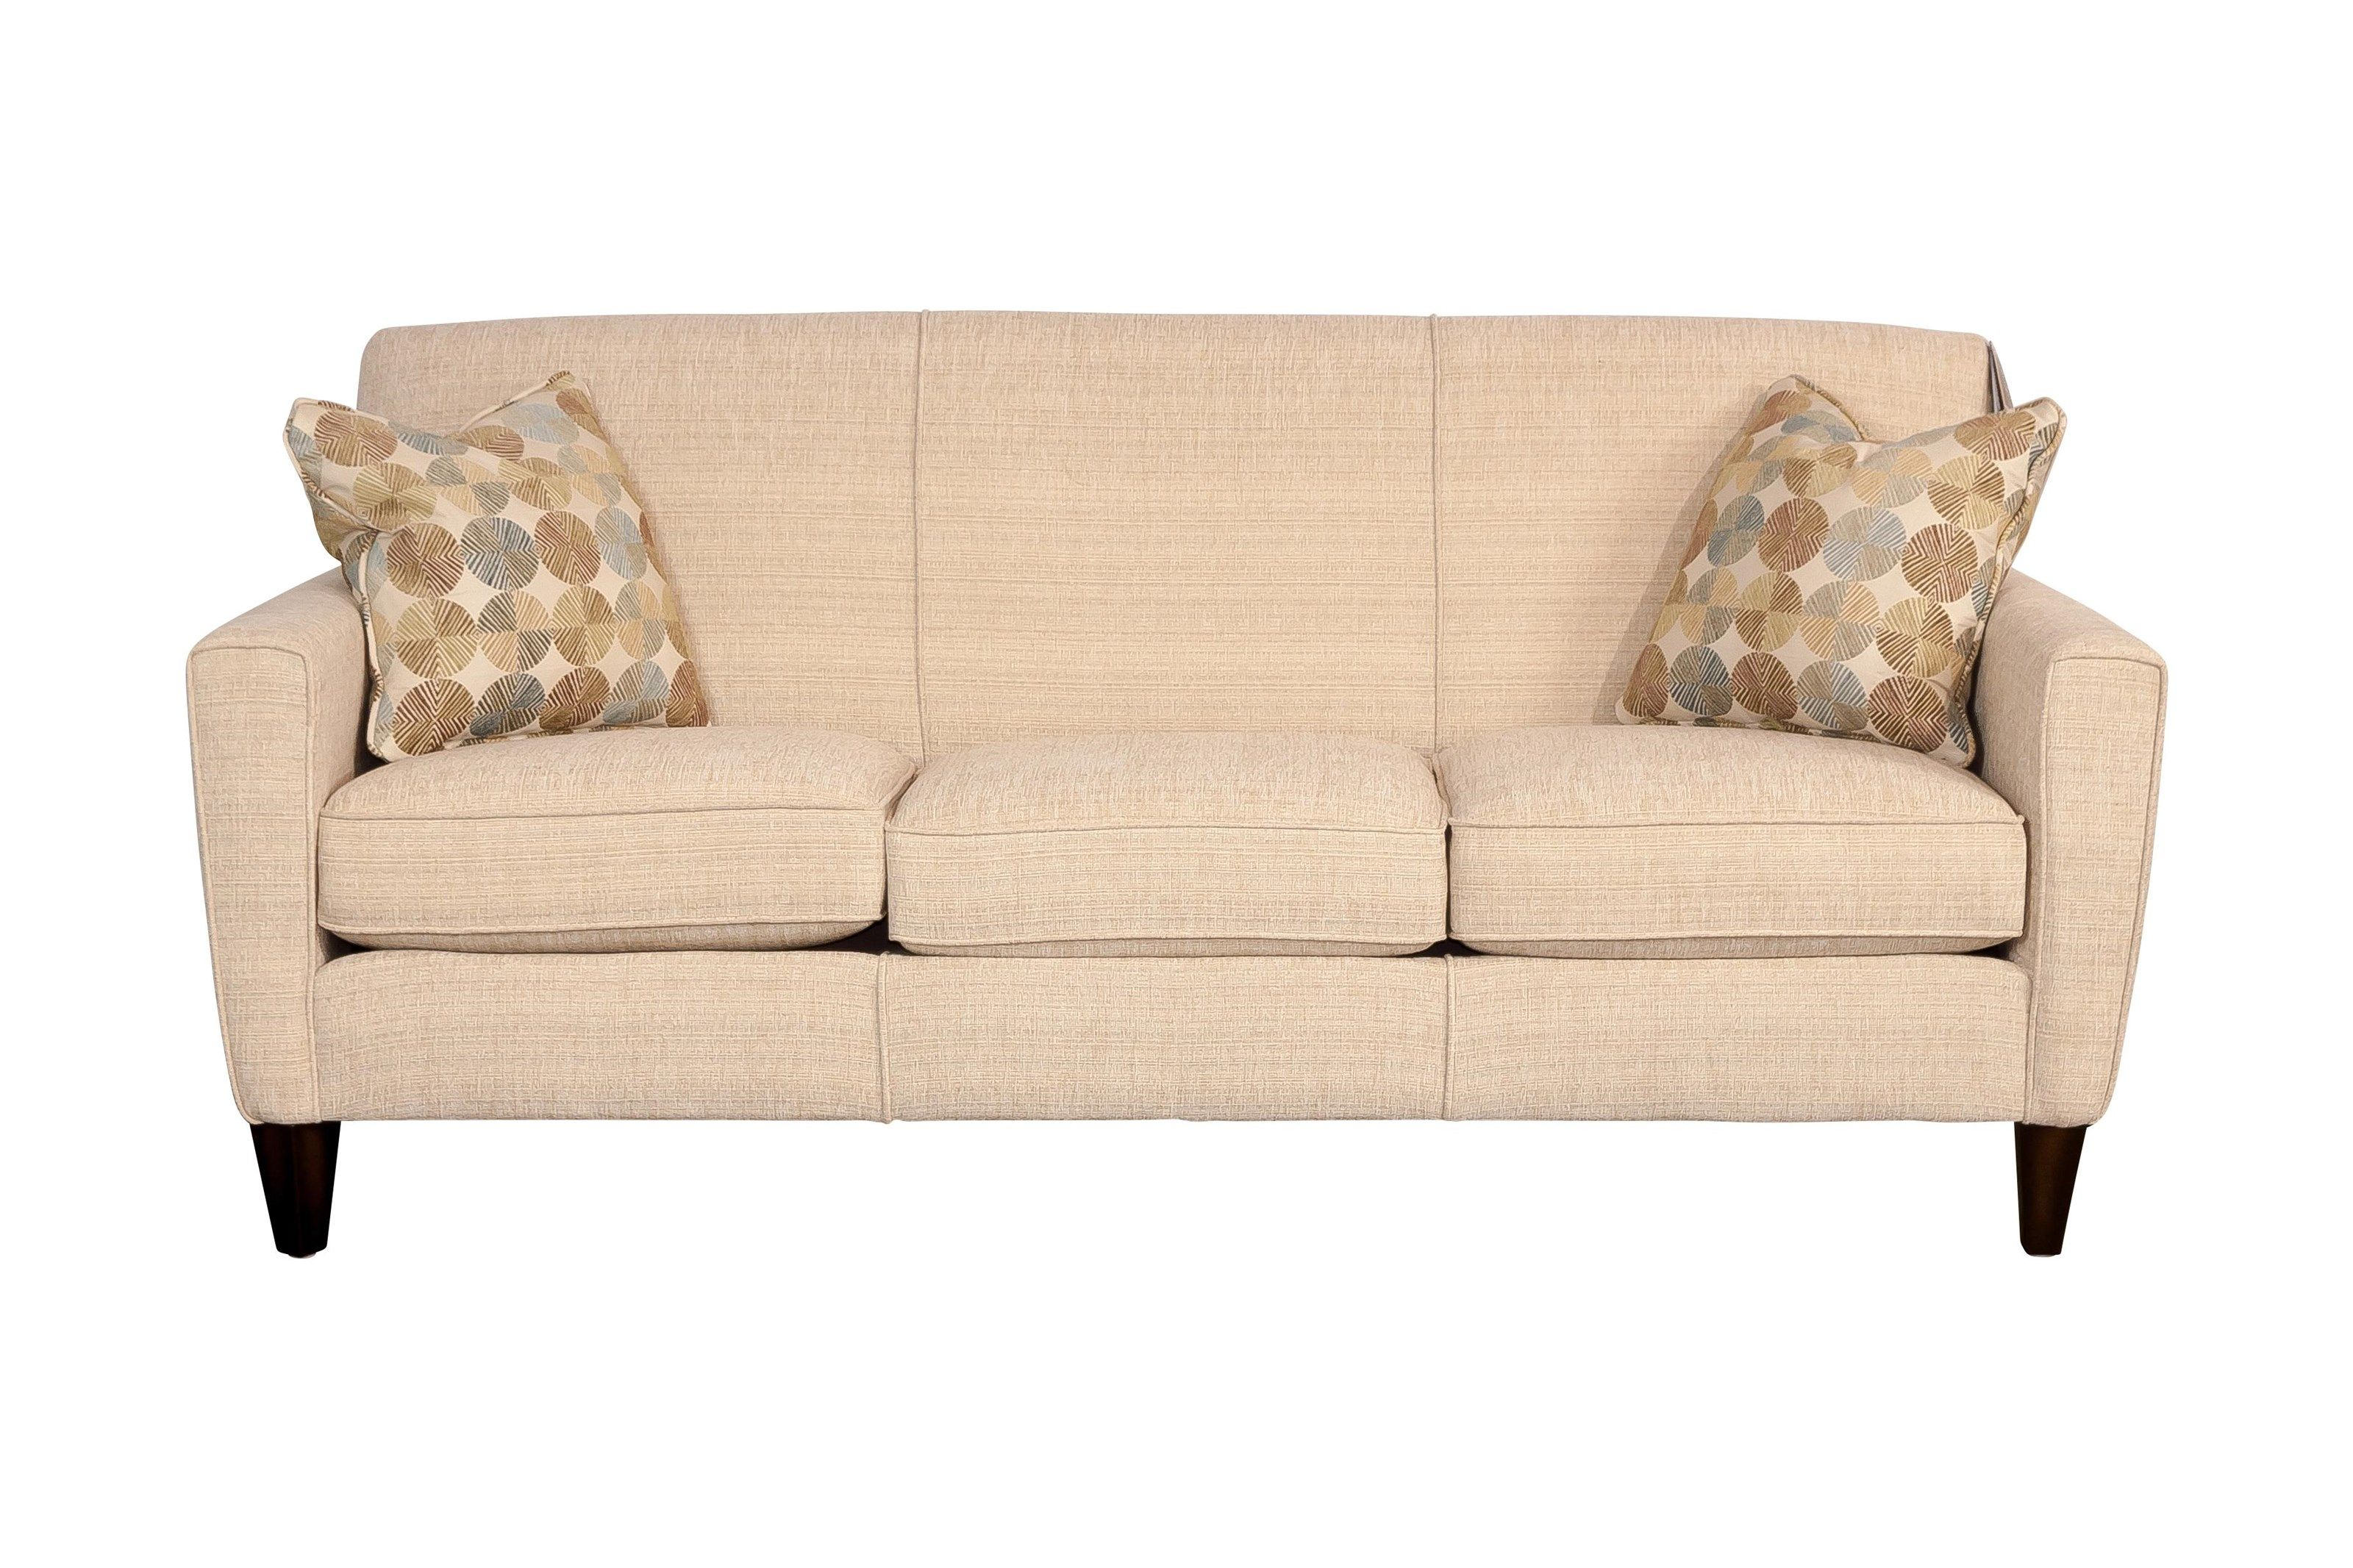 Digby Upholstered Sofa By Flexsteel At